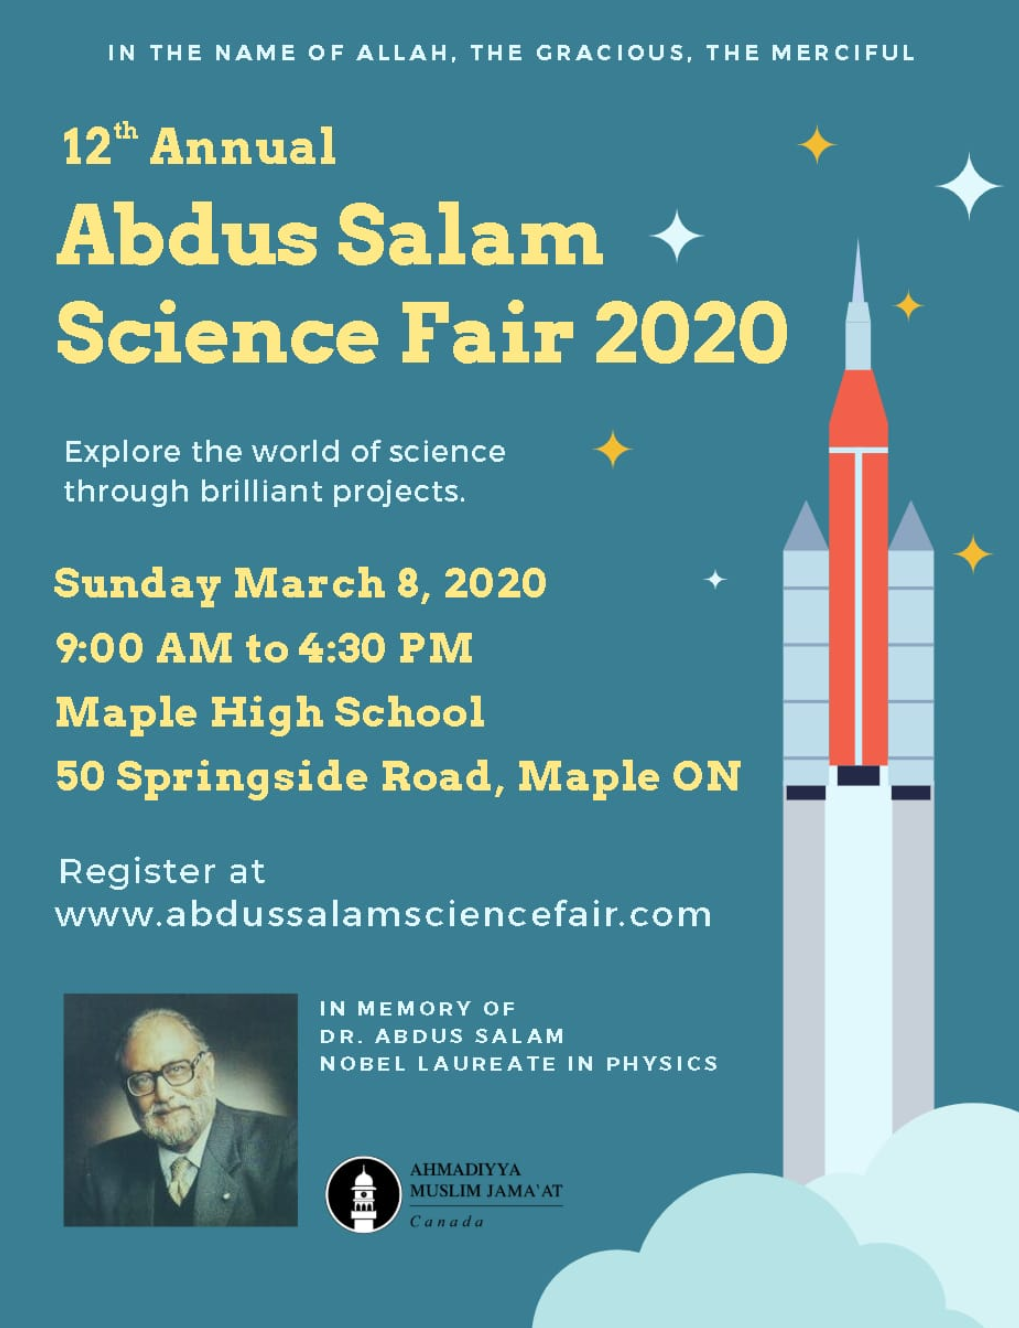 Abdus Salam Science Fair